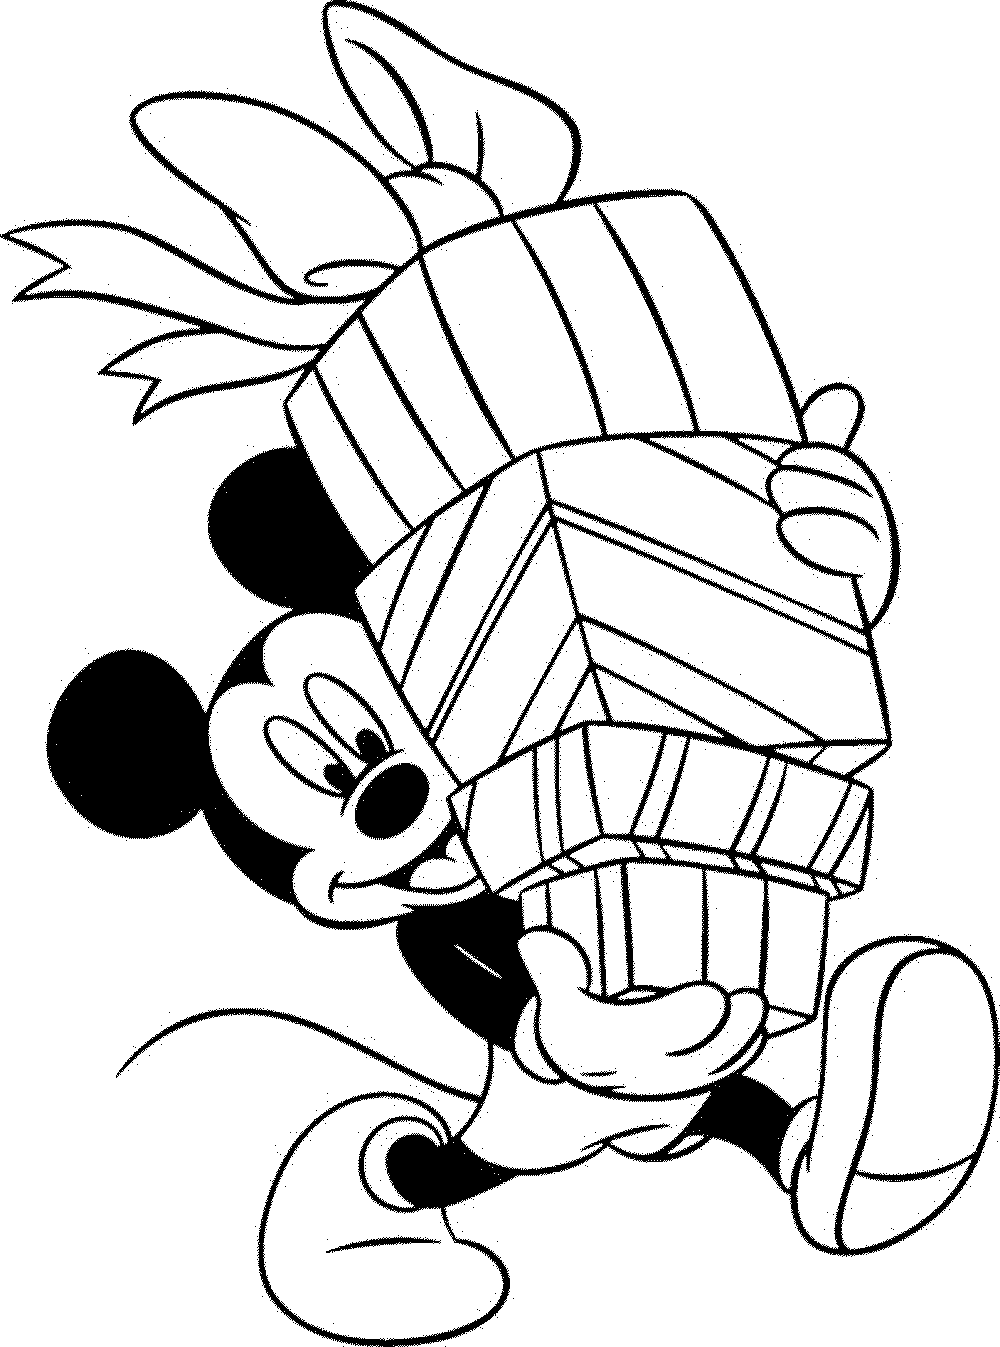 Coloring Pages Mickey Mouse Christmas : Mickey mouse christmas coloring page home